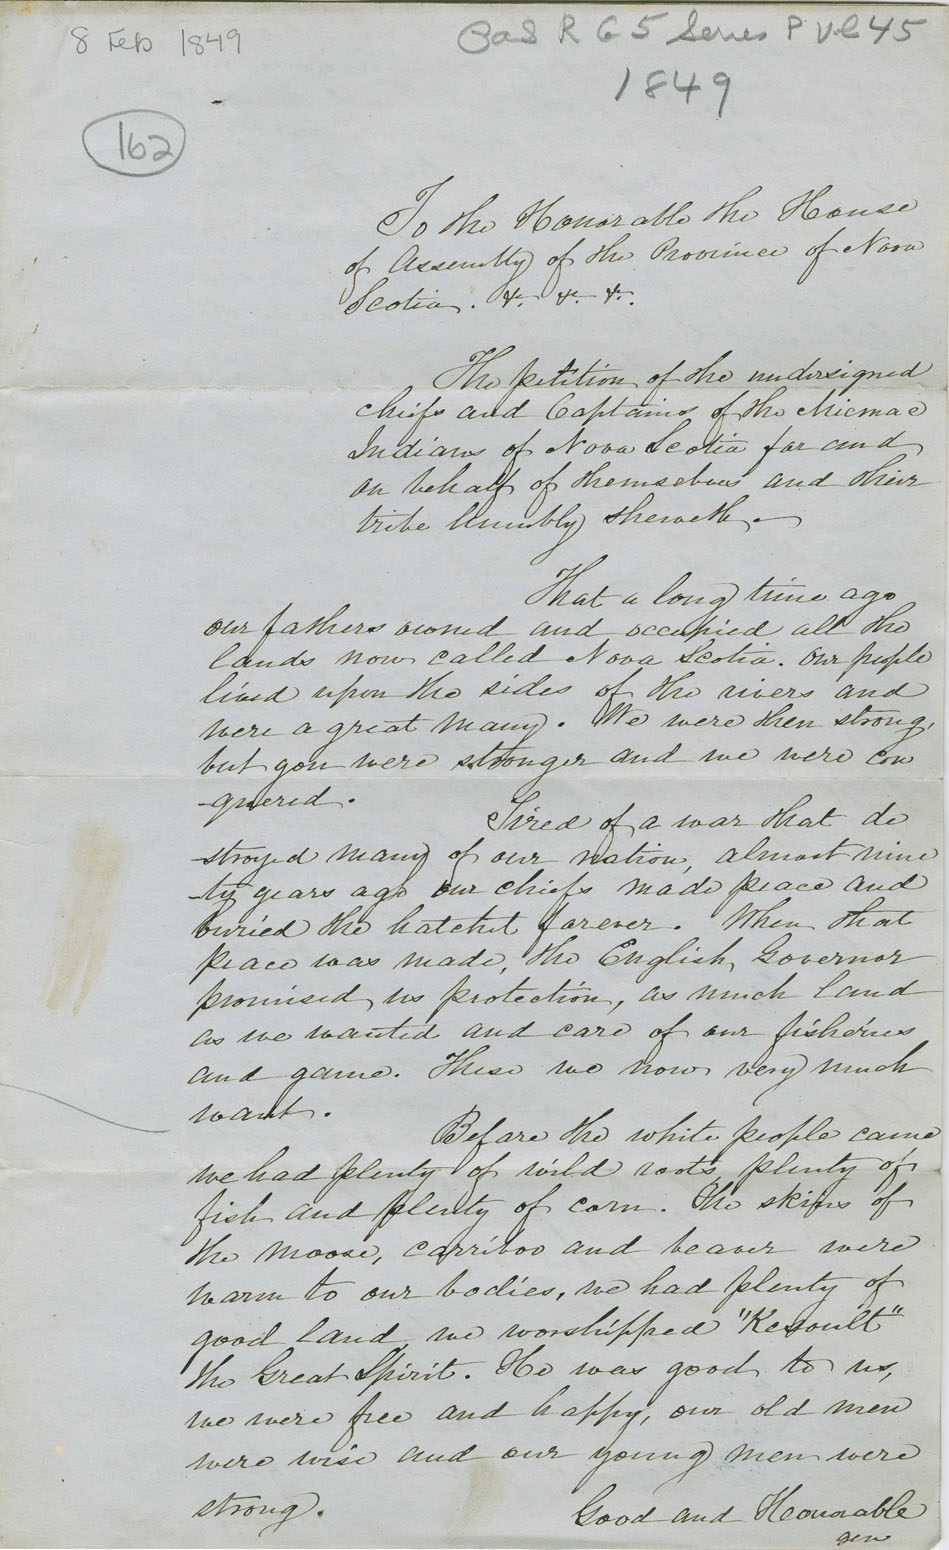 Petition of the Chiefs and Captains of the Mi'kmaq on Nova Scotia for aid to make farms.